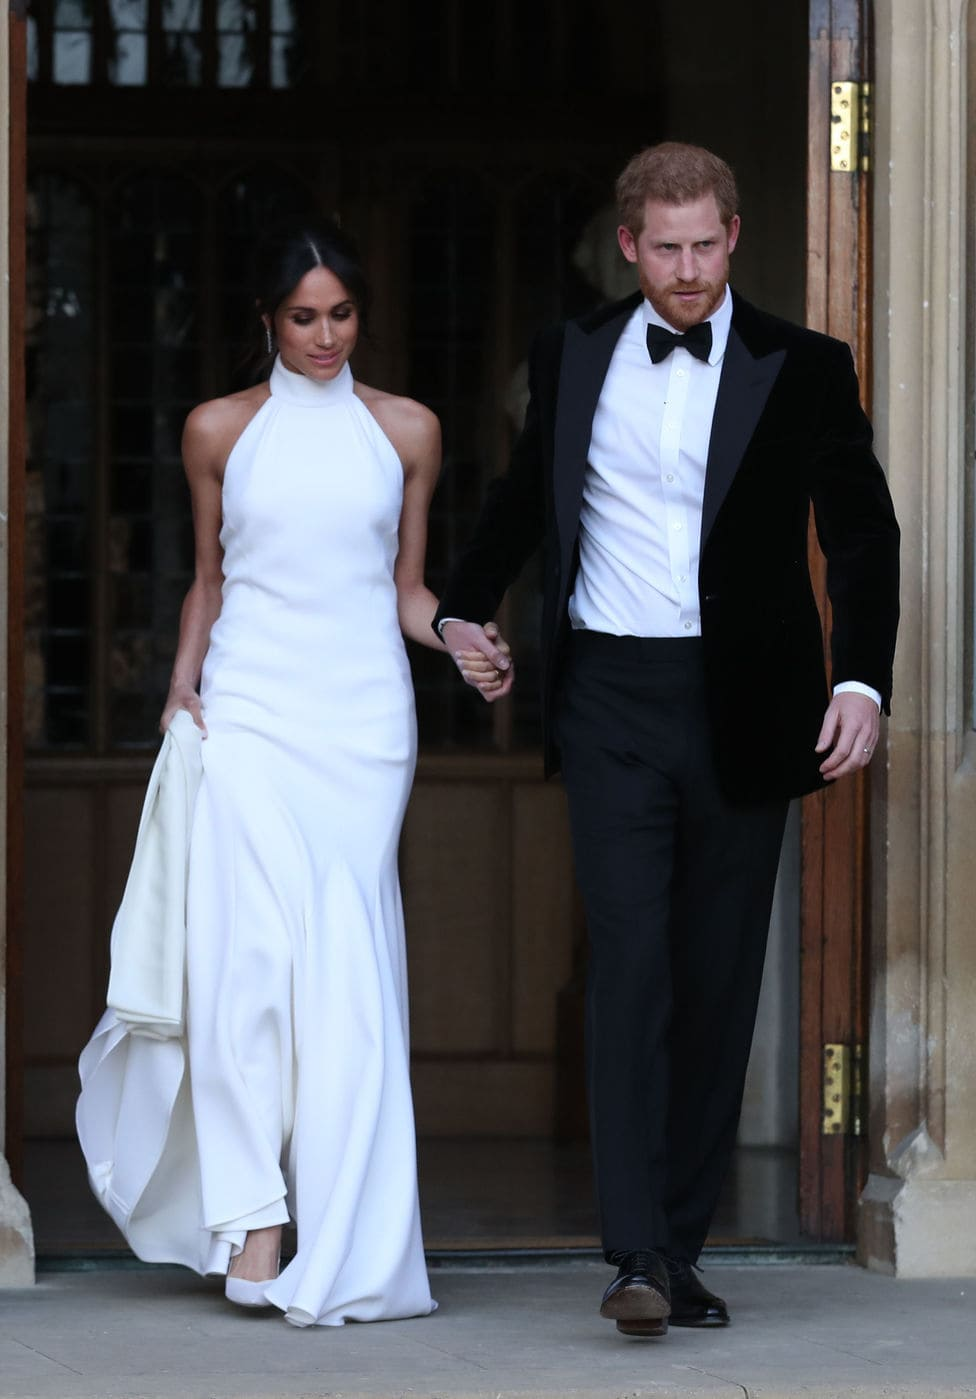 Meghan Markle in her wedding reception dress by Stella McCartney